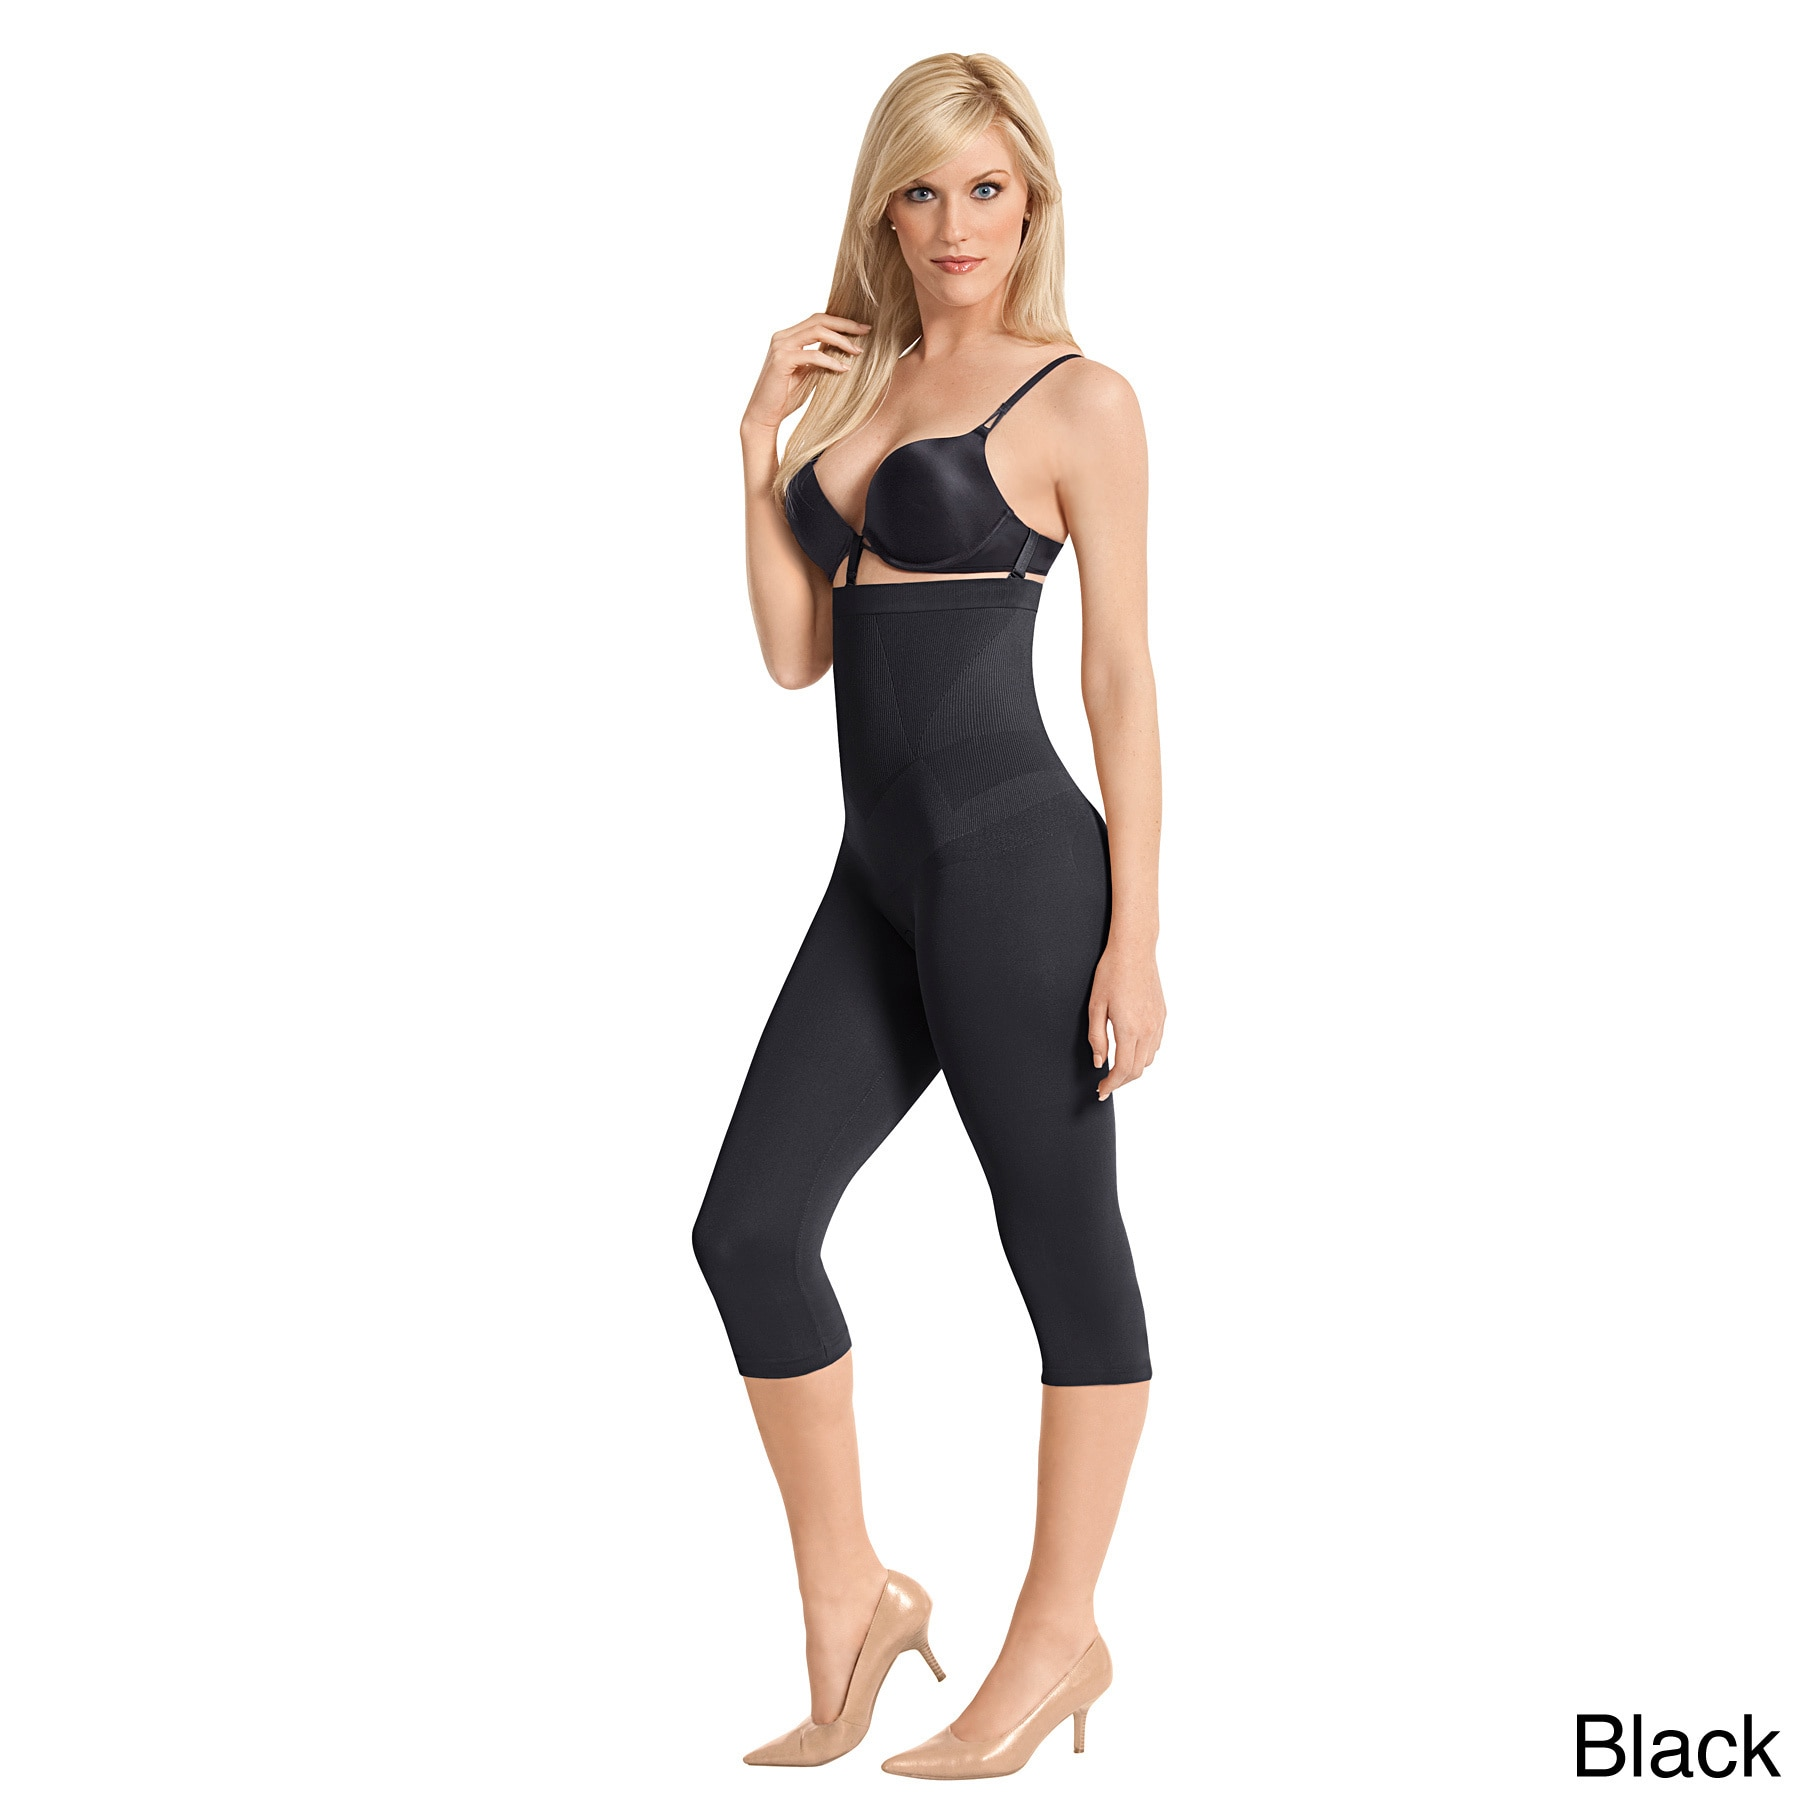 85fa929cf Shop Julie France by Euroskins Women s Body Shapers Cotton Spandex Regular  Firm Control High-waist Capri Shaper - Free Shipping On Orders Over  45 ...